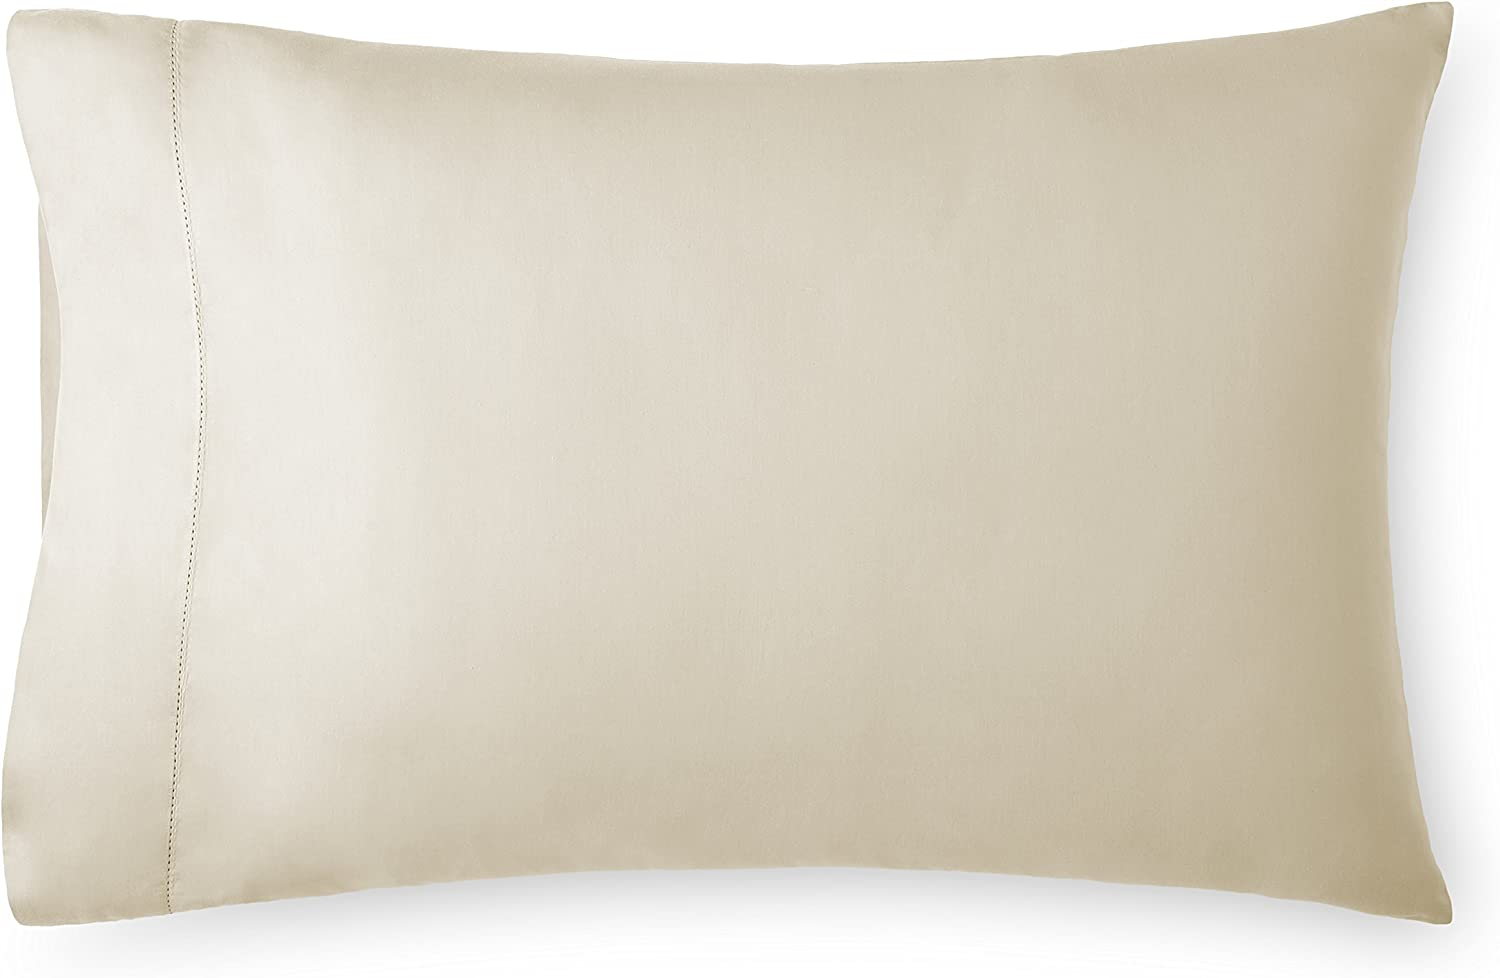 Barolo Pillow Case Tan Color King Set Size Pair T New item 25% OFF Cal-King 2pc